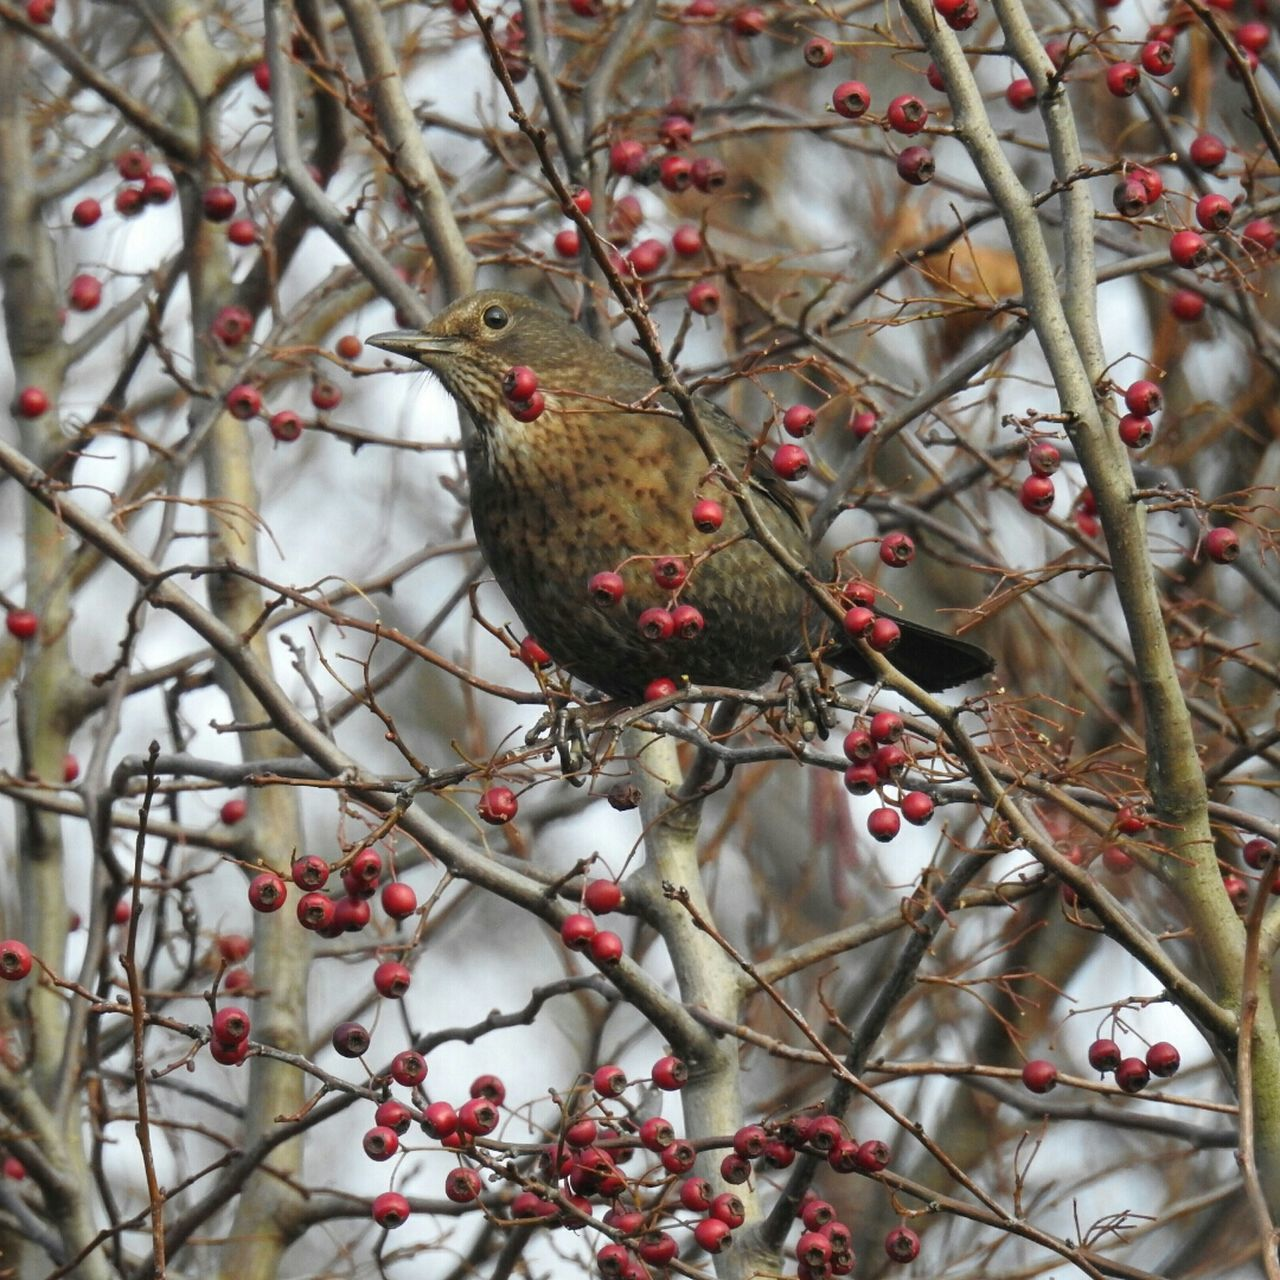 Songbird  SongThrush Turdus Philomelos Bird Red Perching Tree Branch No People Nature Animal Themes Rowanberry Day Outdoors Food Hanging Beauty In Nature Close-up Animals In The Wild Berry Nature Animal Wildlife Beautiful Taking Photos Naturelovers